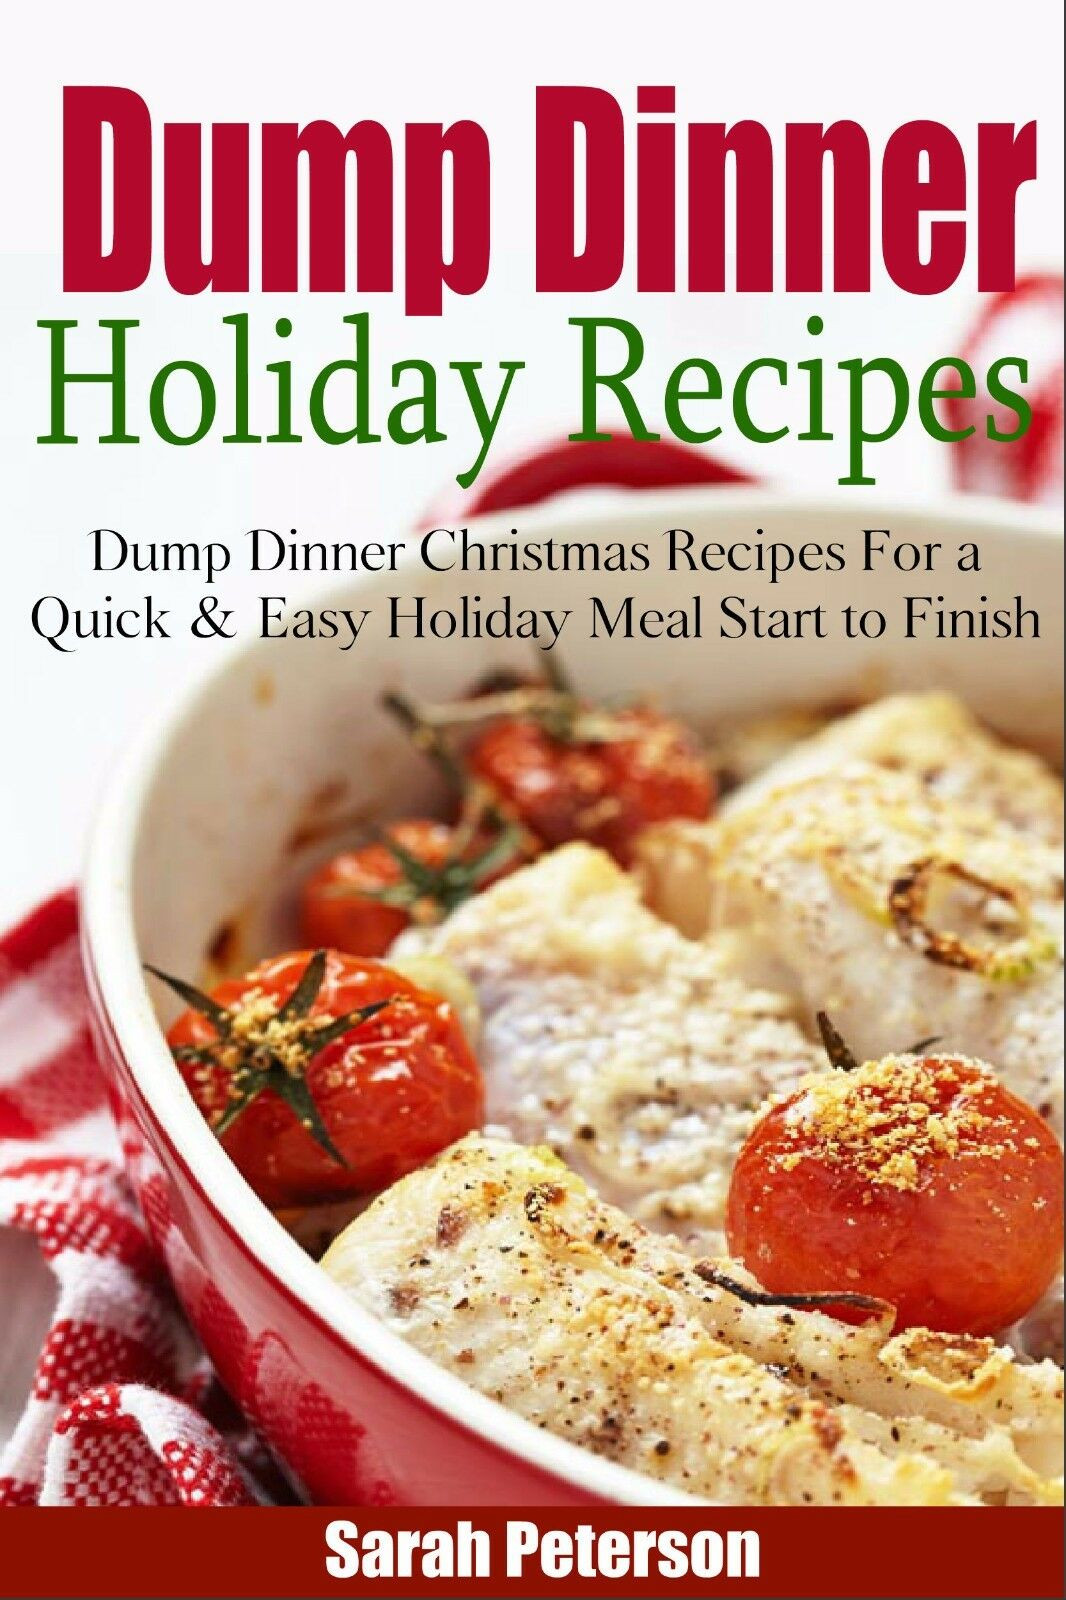 Easy Christmas Dinners Recipes  Dump Dinner Holiday Recipes Dump Dinner Christmas Recipes